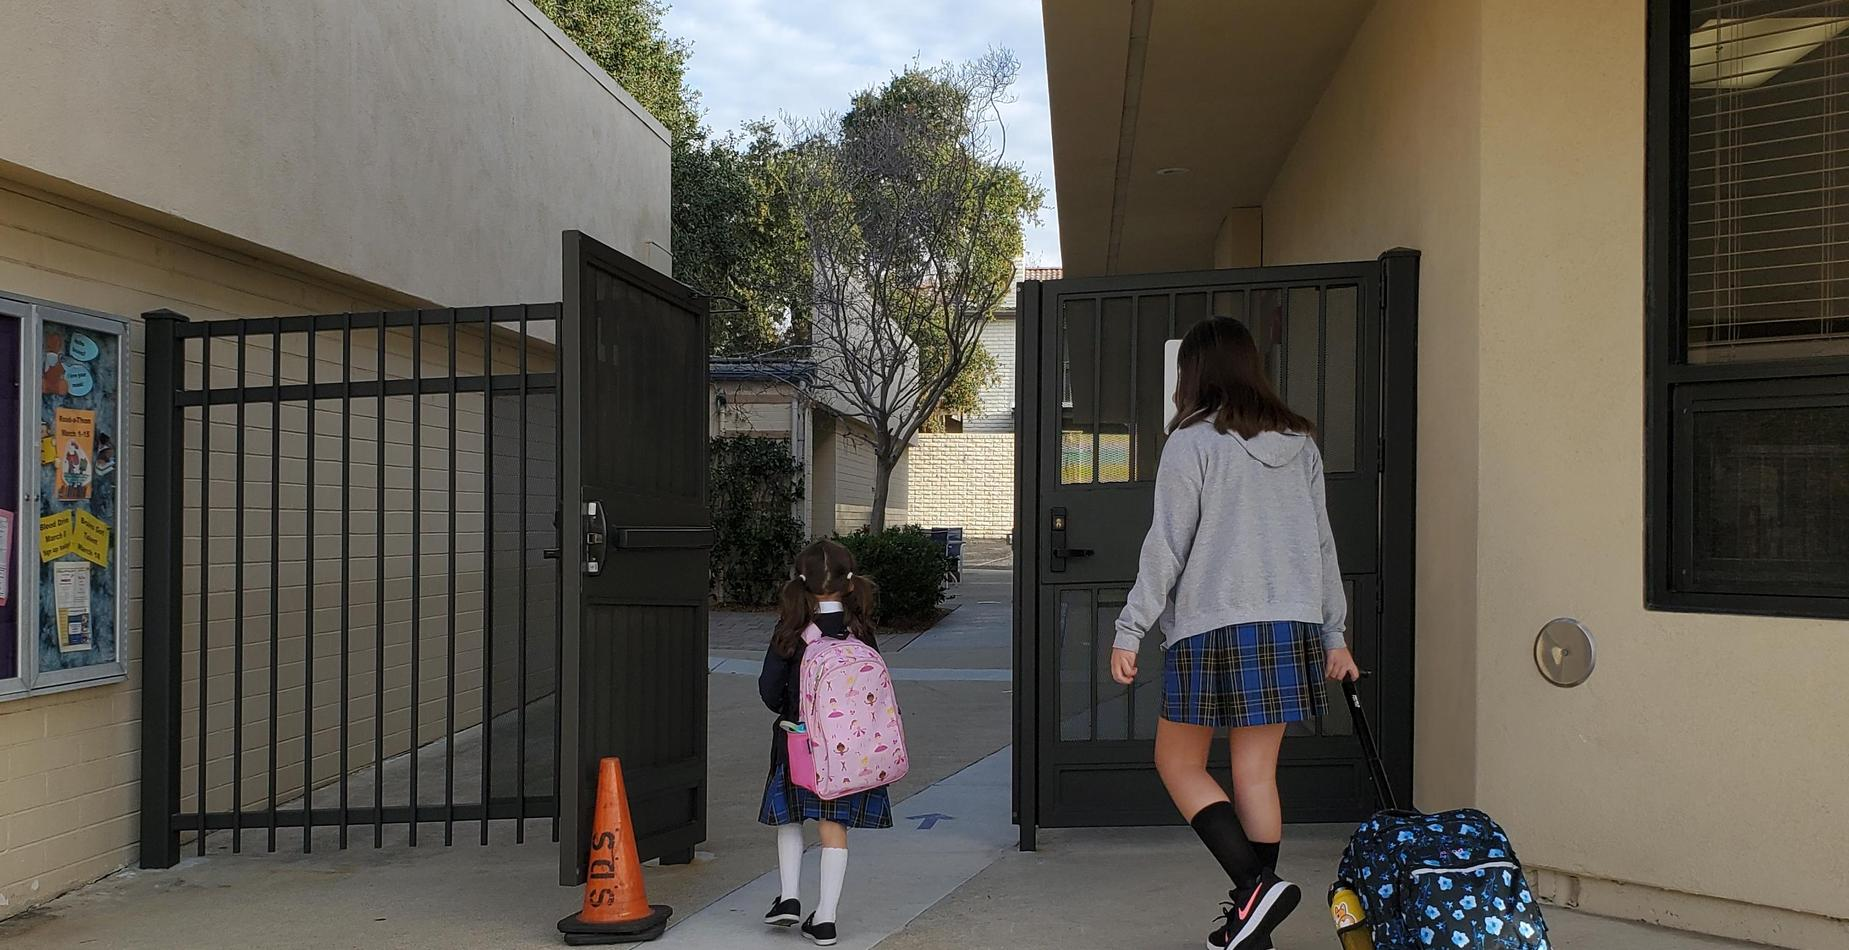 Our Bruins entering our school grounds